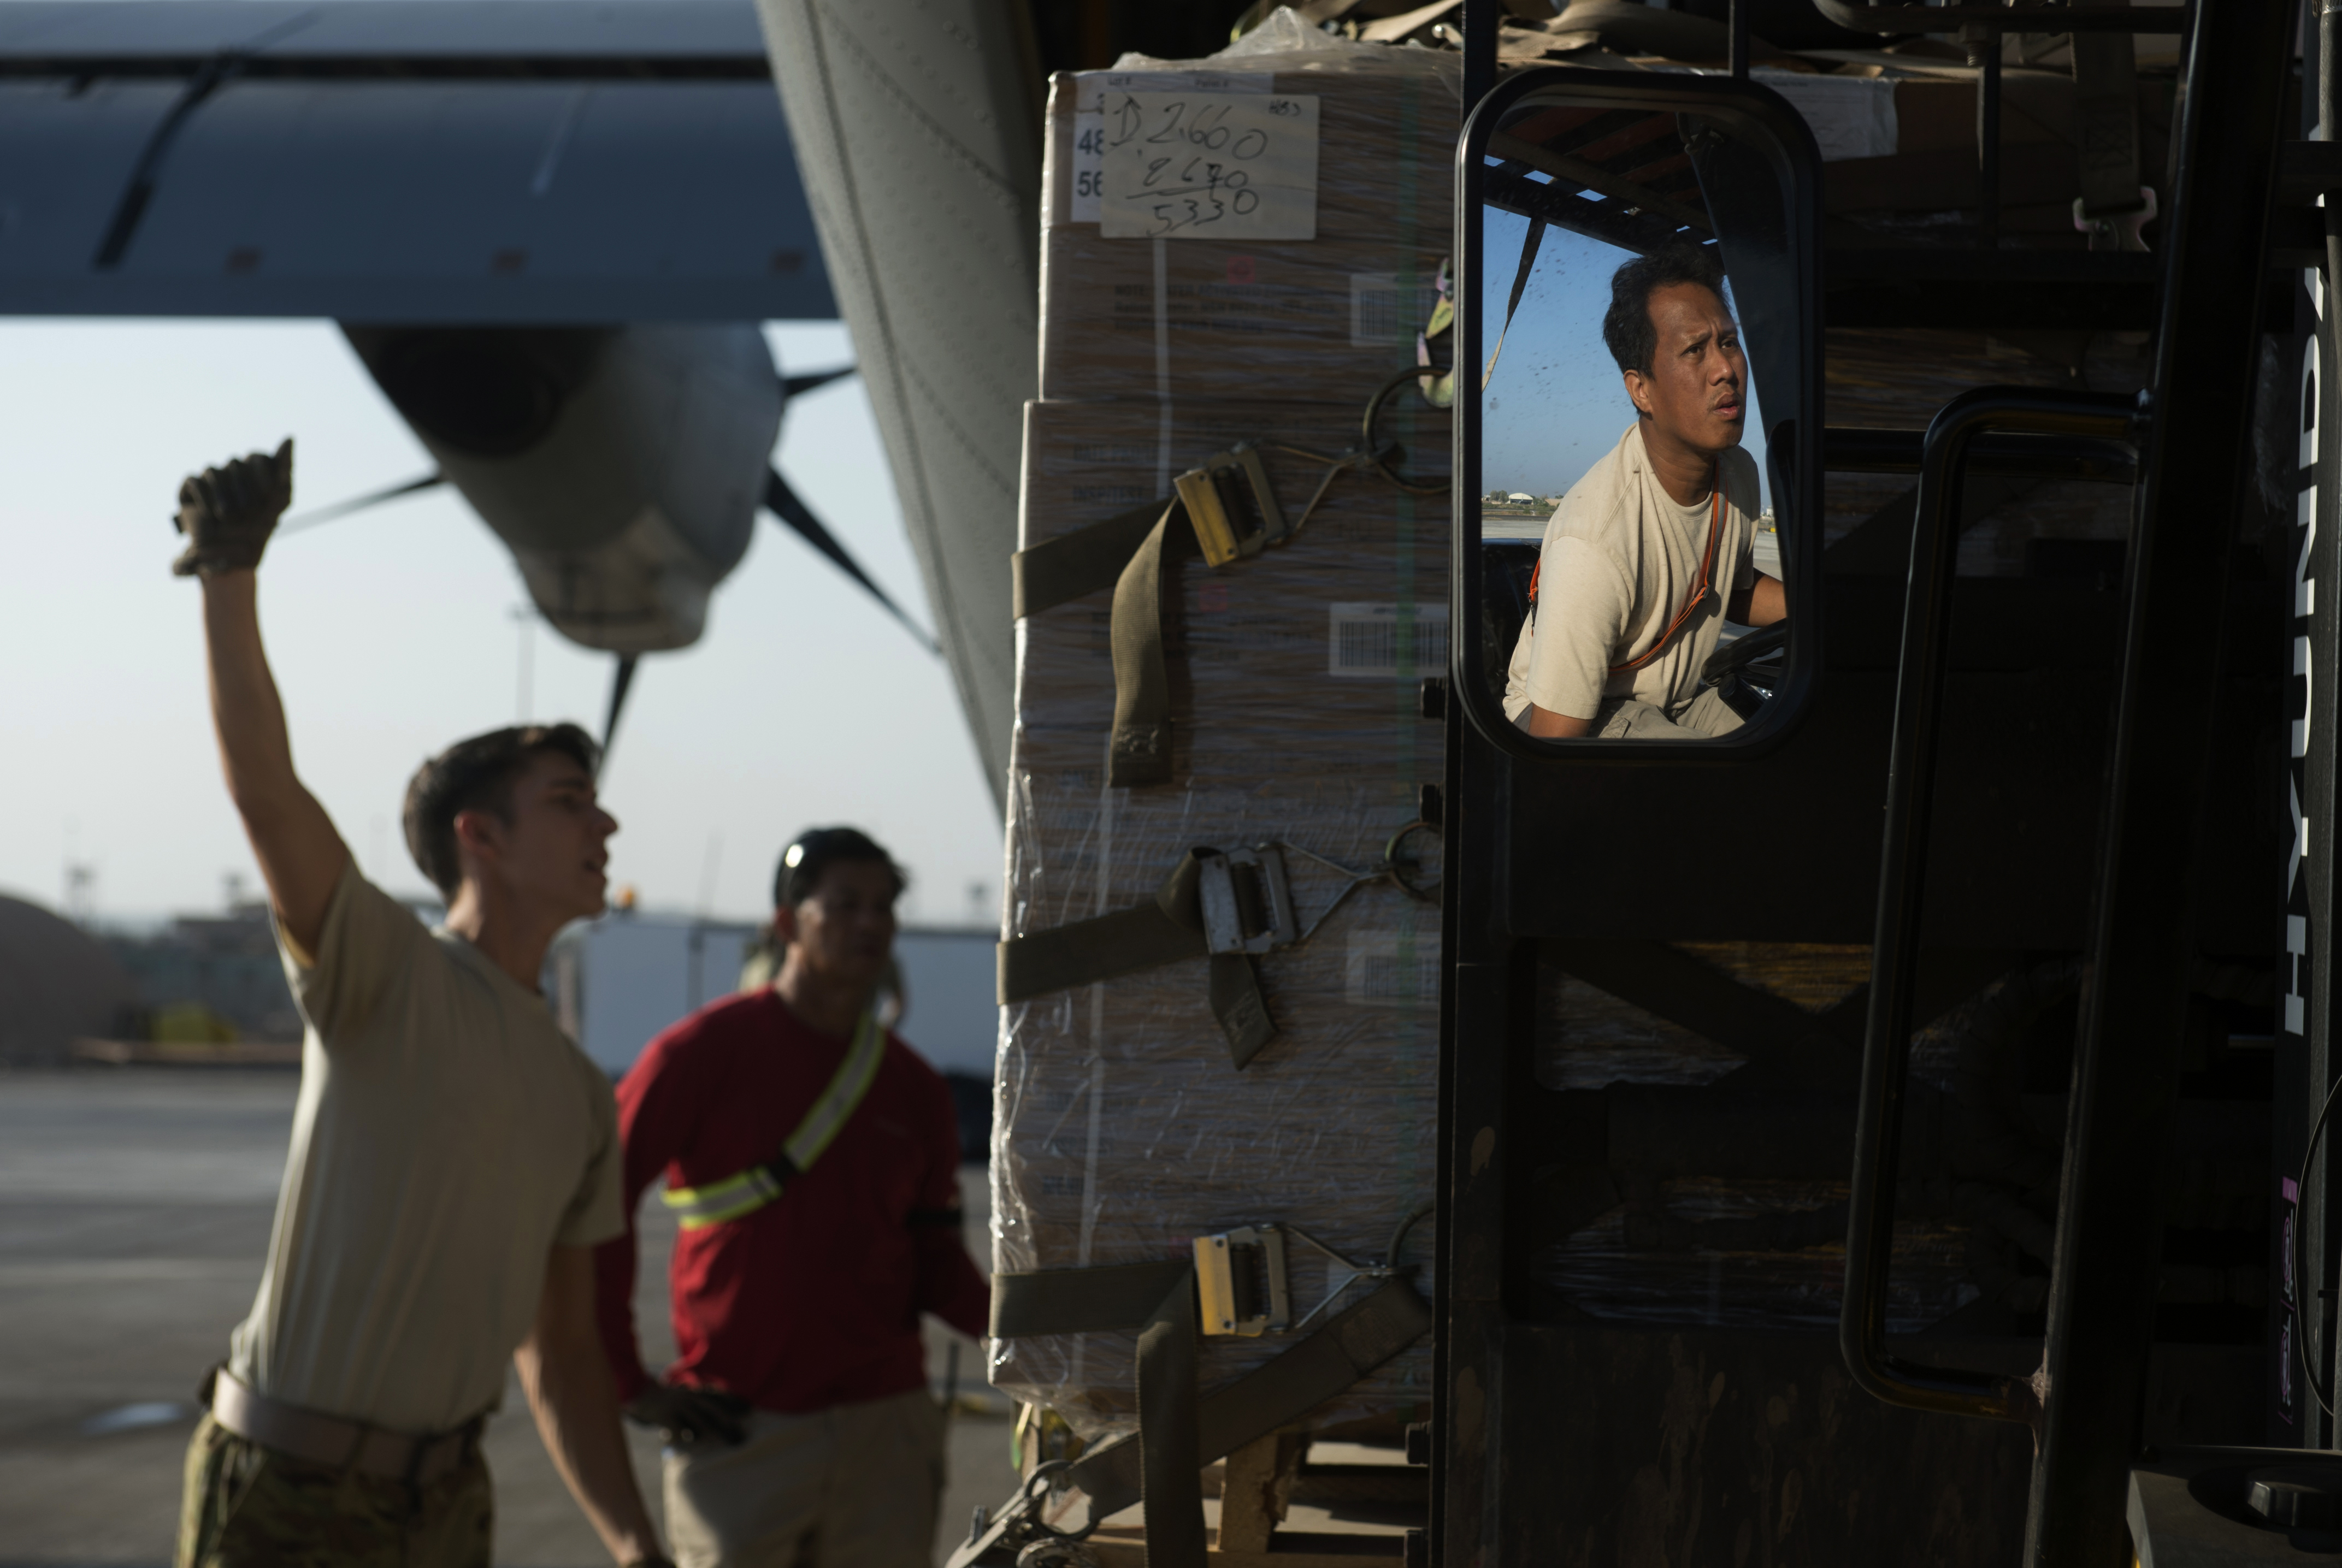 Senior Airman Zachary McGhee, 75th Expeditionary Airlift Squadron loadmaster, uses hand signals to communicate directions with a forklift behind a C-130J Super Hercules Nov. 24, 2015, at Camp Lemonnier, Djibouti. The 75th EAS' C-130J aircrews fly a wide range of missions, including the timely movement of the East Africa Response Force in support of Combined Joint Task Force-Horn of Africa.  (U.S. Air Force photo by Senior Airman Peter Thompson)